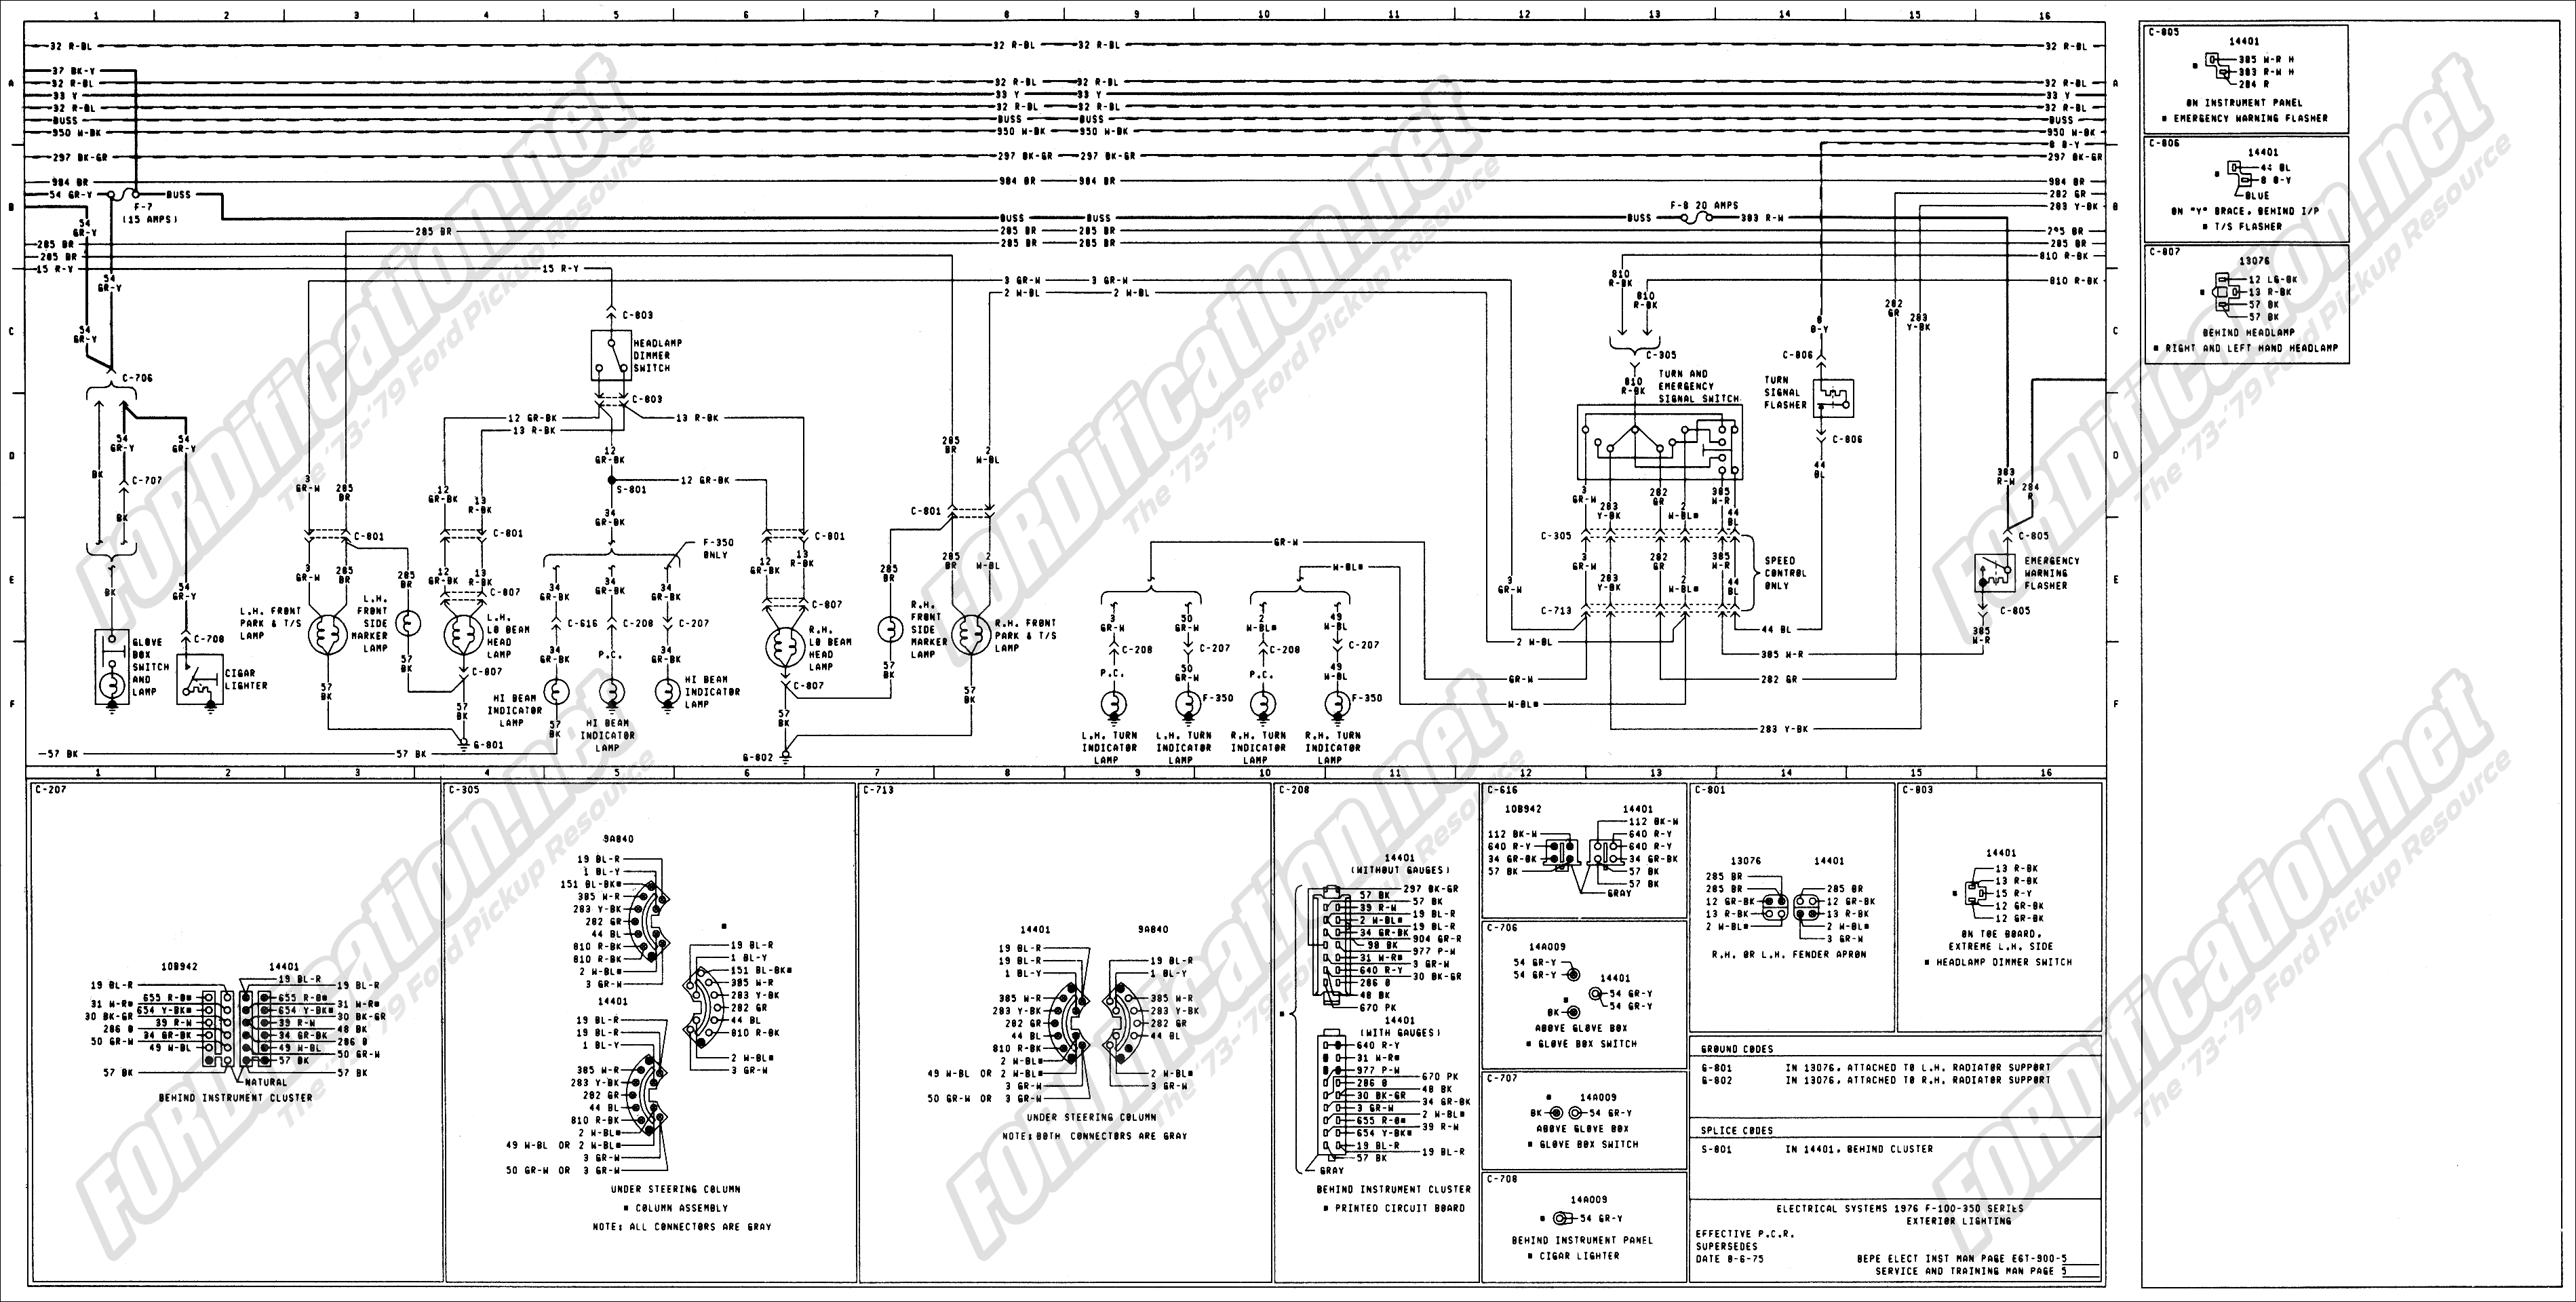 wiring_76master_5of9 1973 1979 ford truck wiring diagrams & schematics fordification net ford diagrams schematics at edmiracle.co